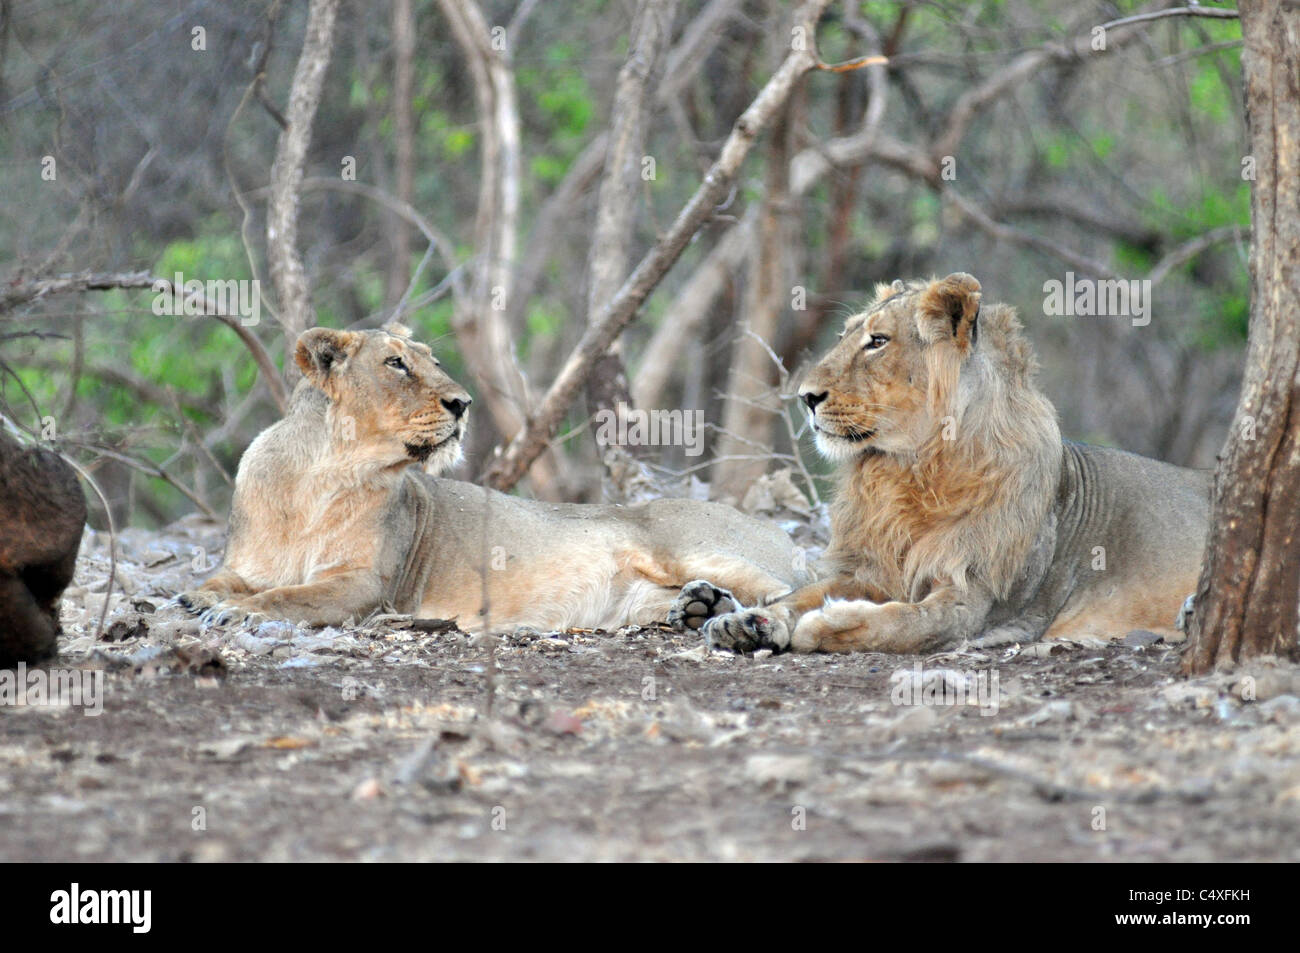 Asiatic Lion Pair in the GIR National Park - Stock Image